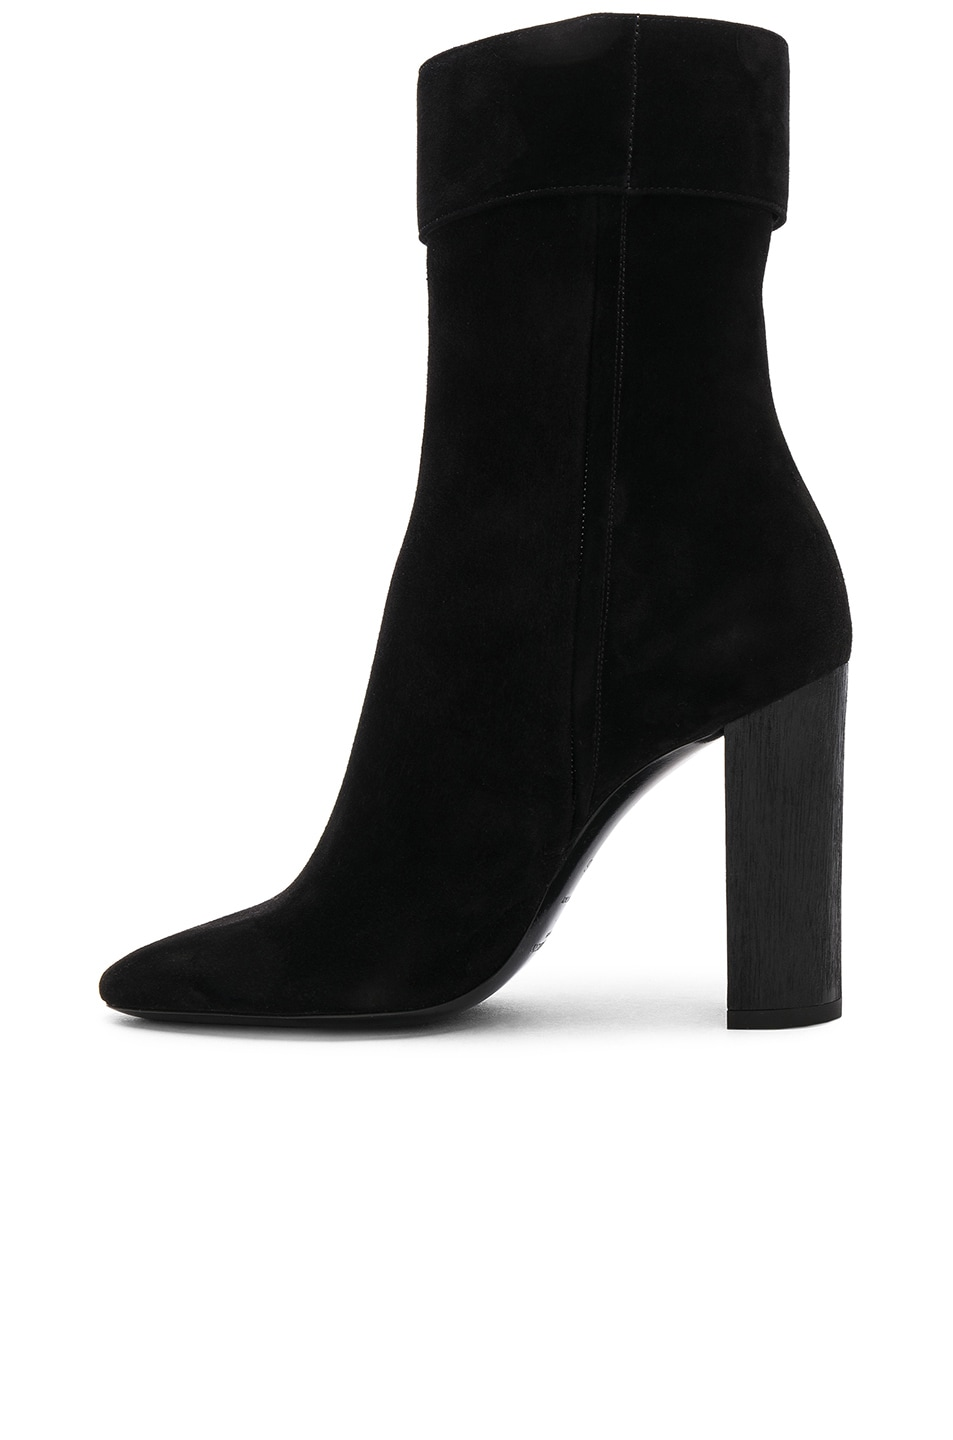 Image 5 of Saint Laurent Suede Joplin Buckle Boots in Black